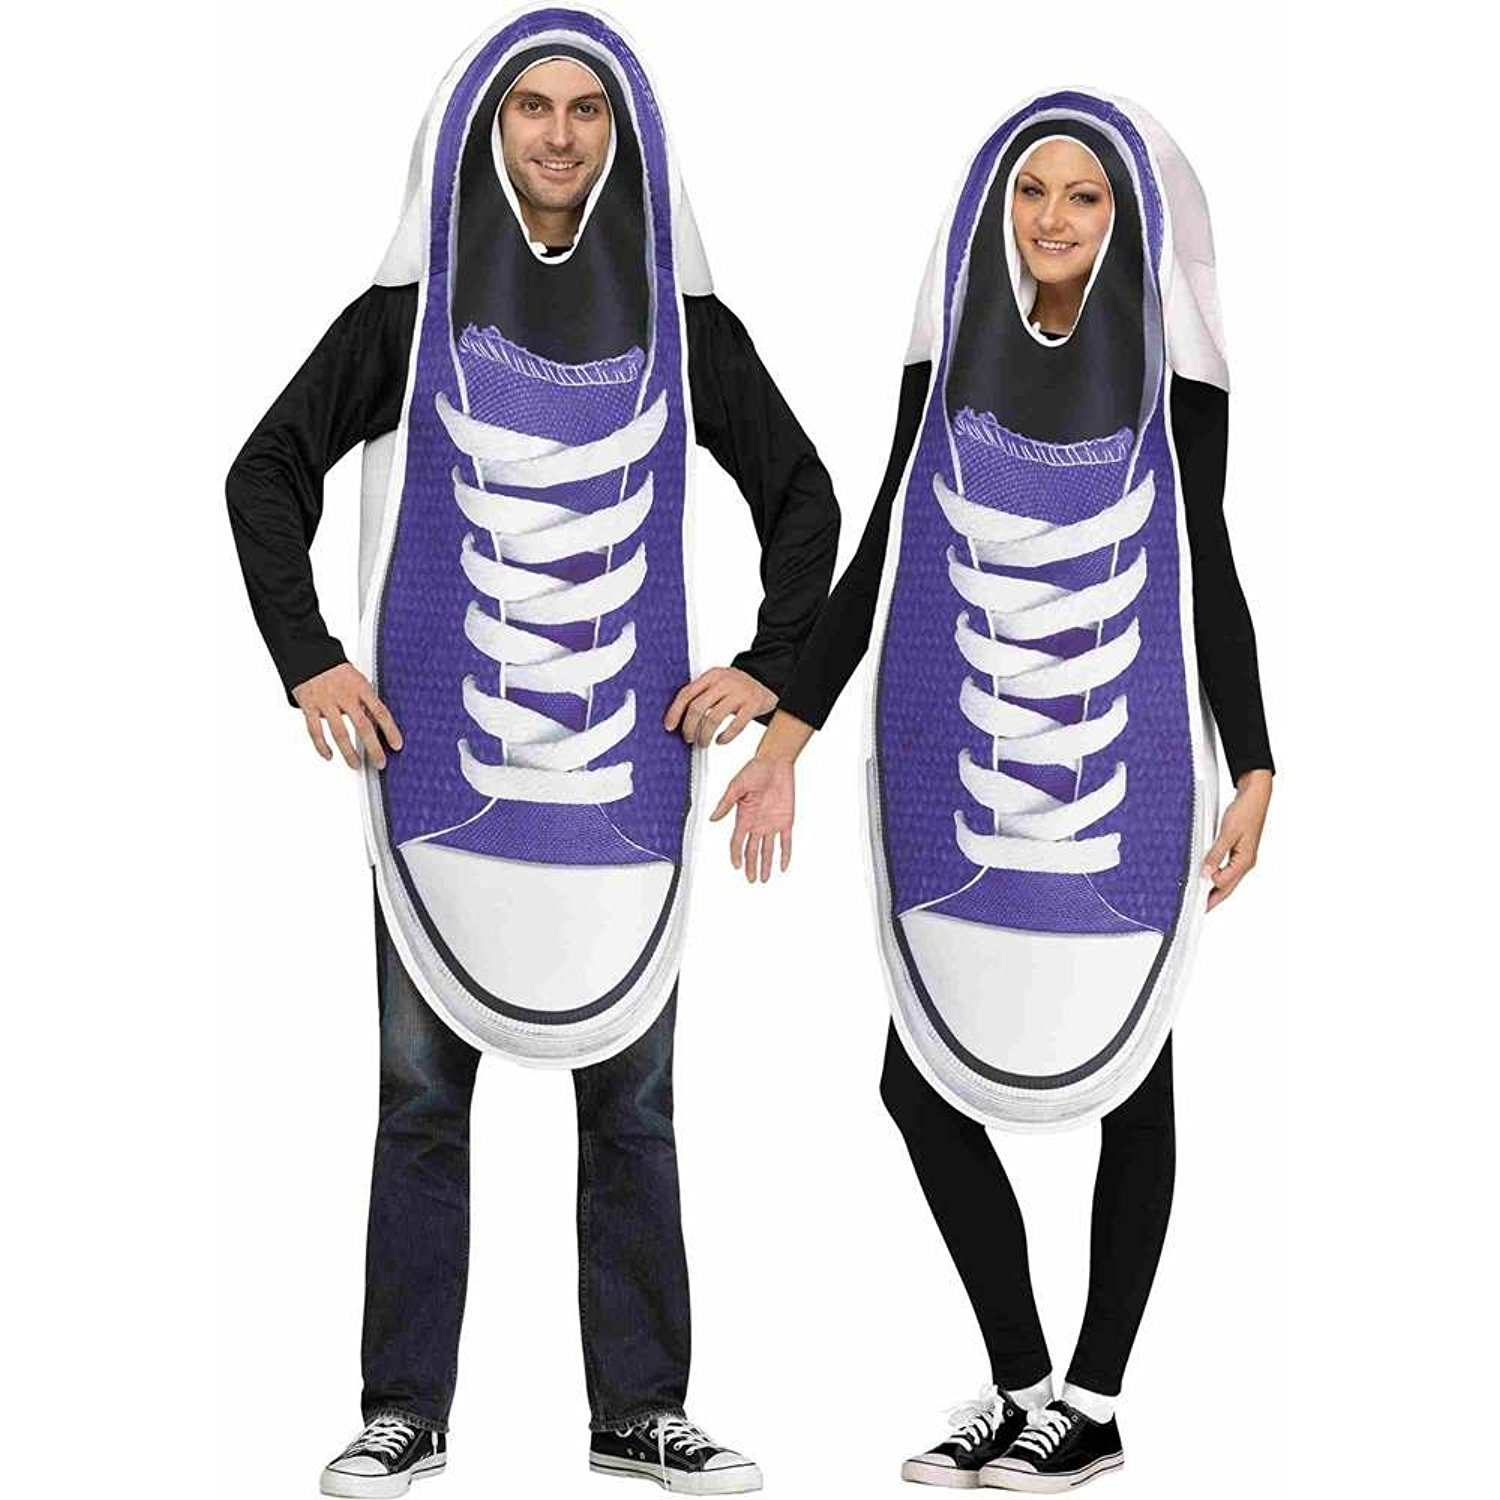 Adult Sneaker Couples Costume Set  sc 1 st  Stop The Boring & Adult Sneaker Couples Costume Set | Stop The Boring